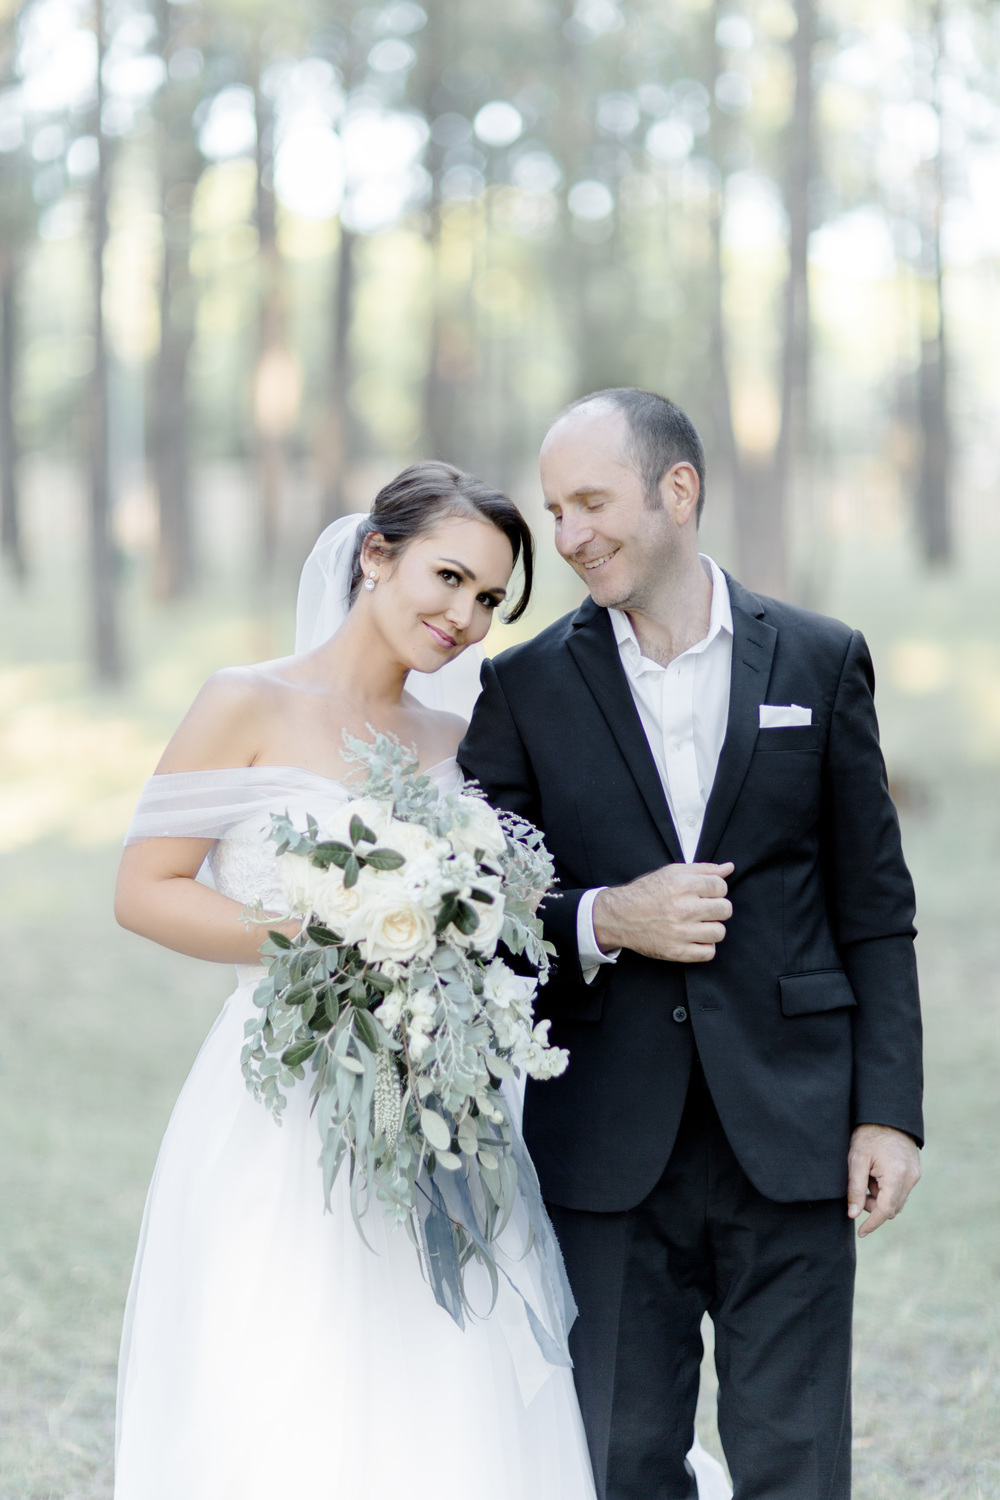 long Meadow johannesburg wedding venue photographer_062.jpg